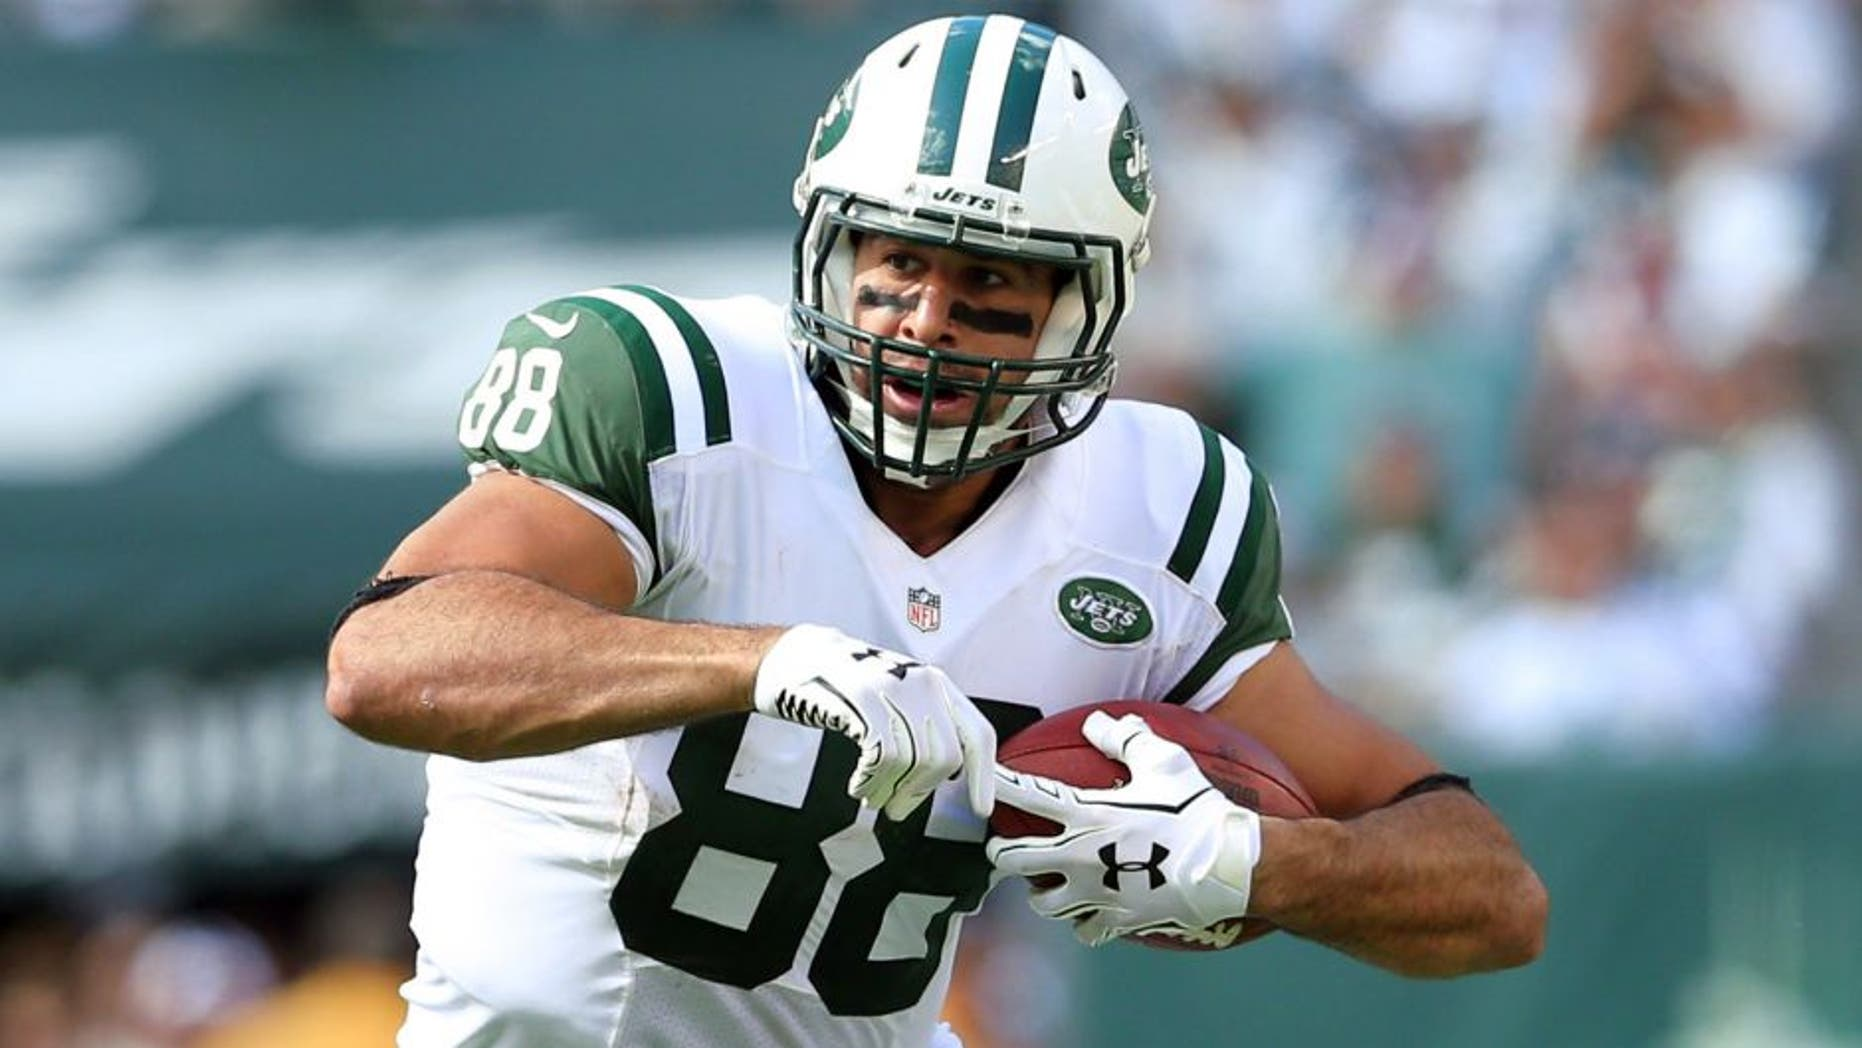 Sep 7, 2014; East Rutherford, NJ, USA; New York Jets tight end Jace Amaro (88) runs with the ball against the Oakland Raiders during a game at MetLife Stadium. The Jets defeated the Raiders 19-14. Mandatory Credit: Brad Penner-USA TODAY Sports